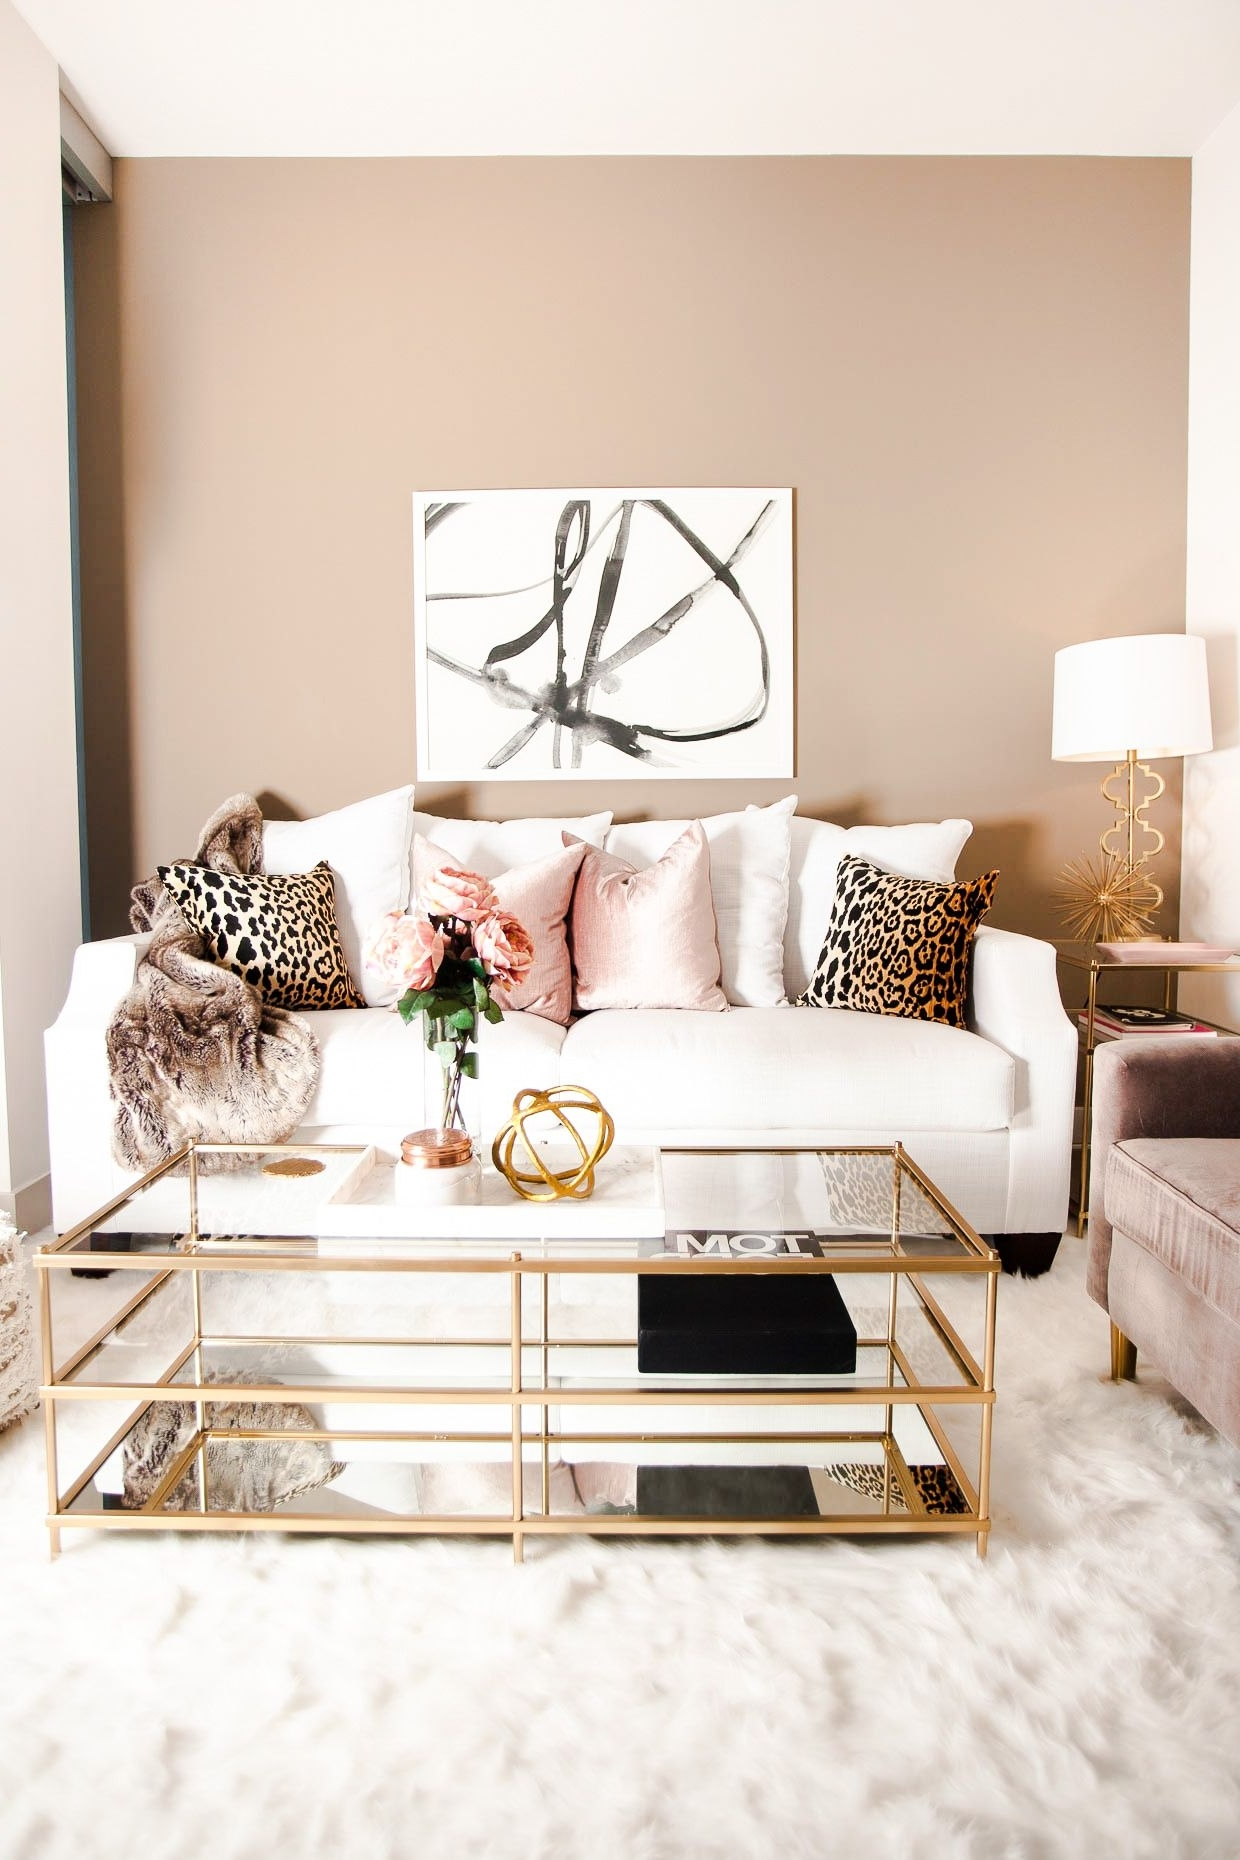 Not My Usual Style But I Really Love This! Love The Leopard 20+ Mink Coloured Living Room Inspirations